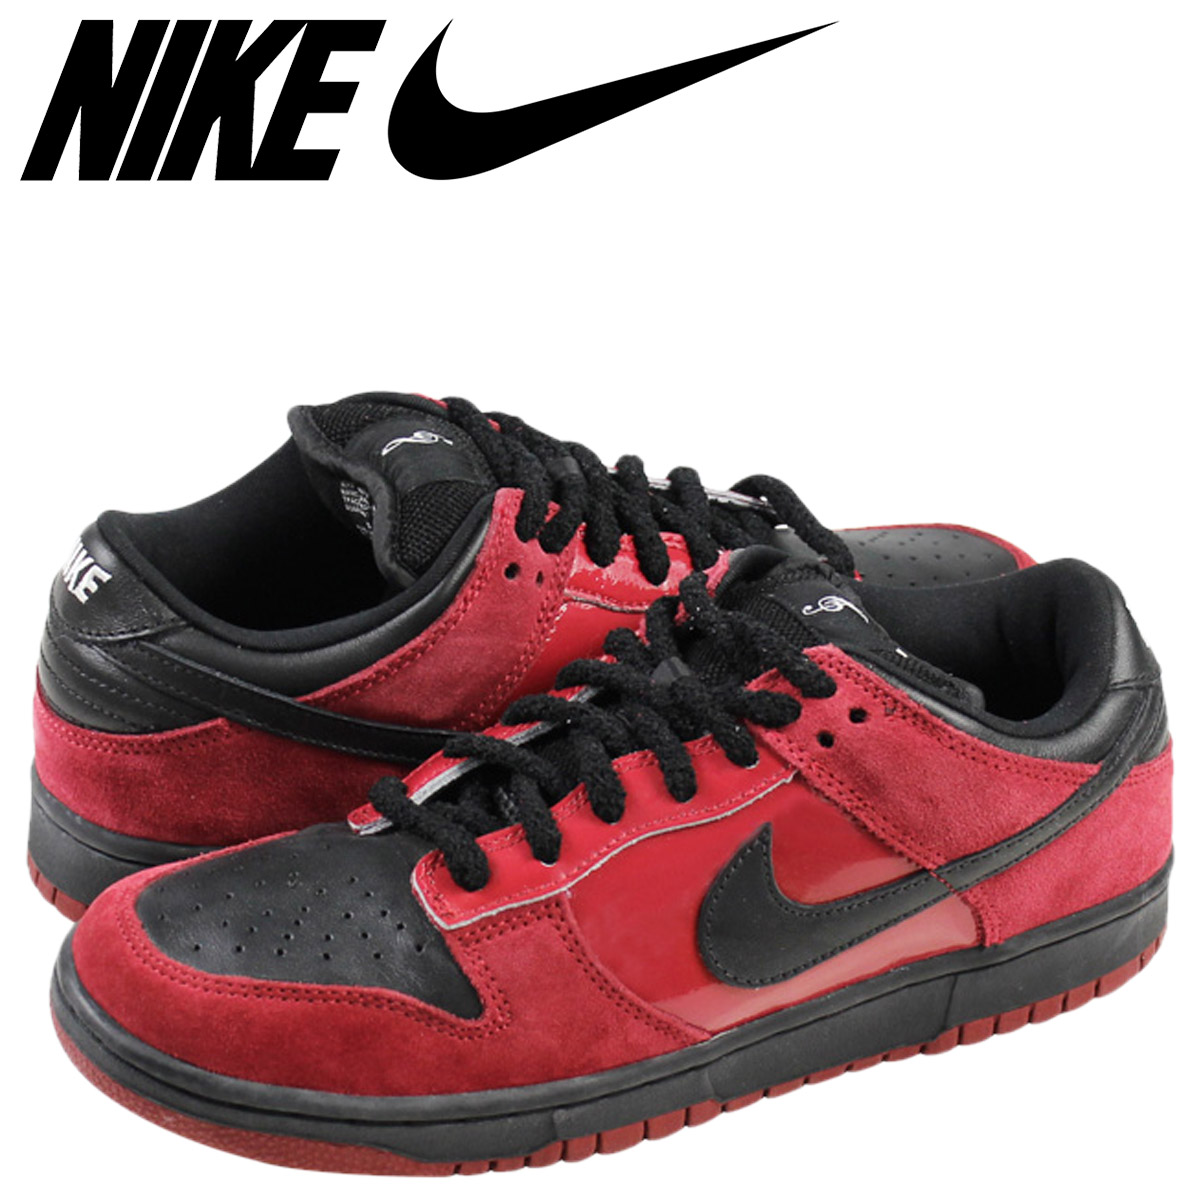 wholesale dealer 4cced 28151 [SOLD OUT] Nike NIKE dunk SB sneakers DUNK LOW PRO SB MILLI VANILLI dunk  low Pro milibanili gold rail 304292-602 red mens